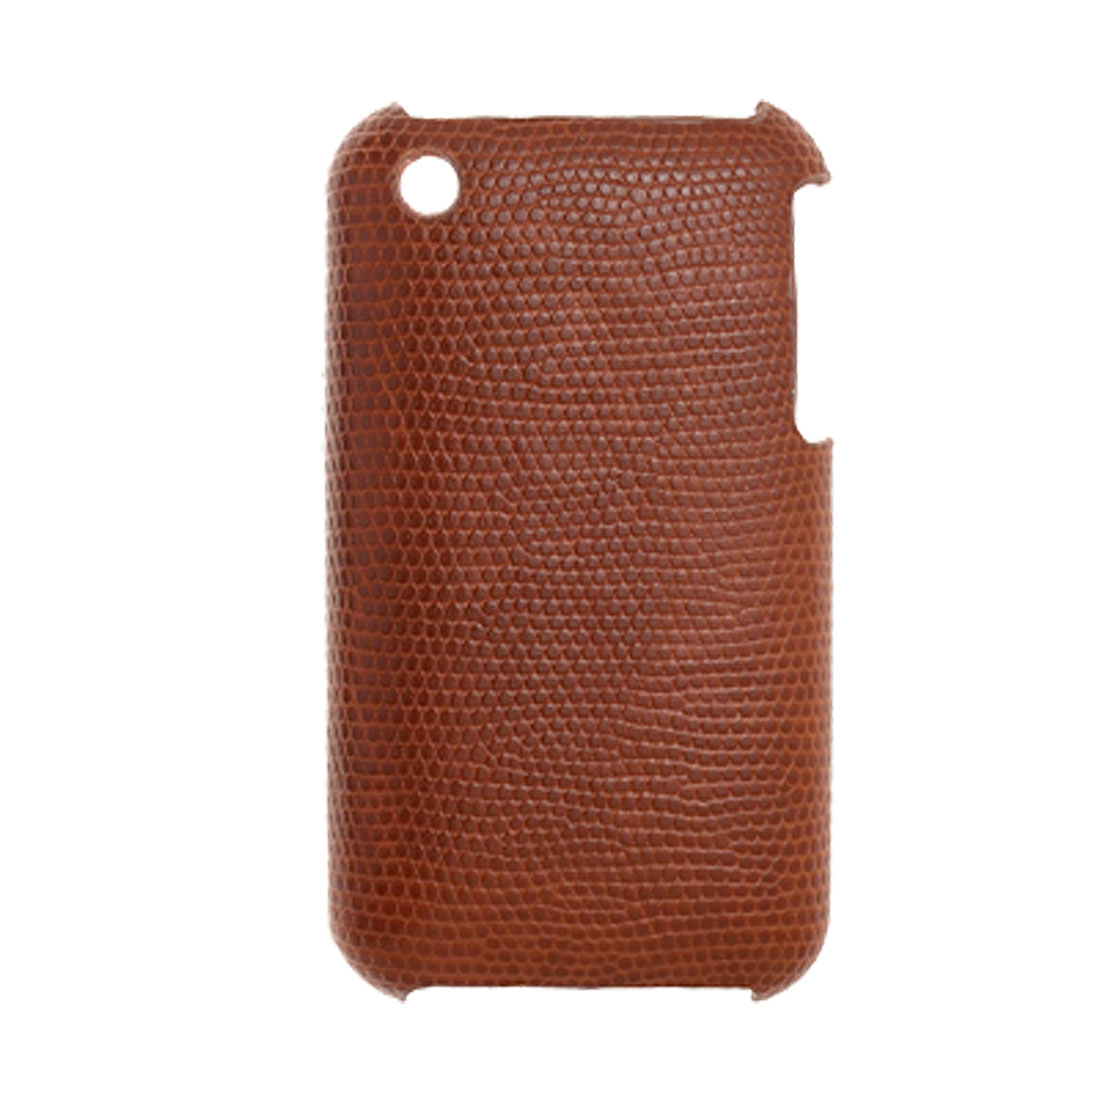 Brown Textured Plastic Back Case Cover for iPhone 3G